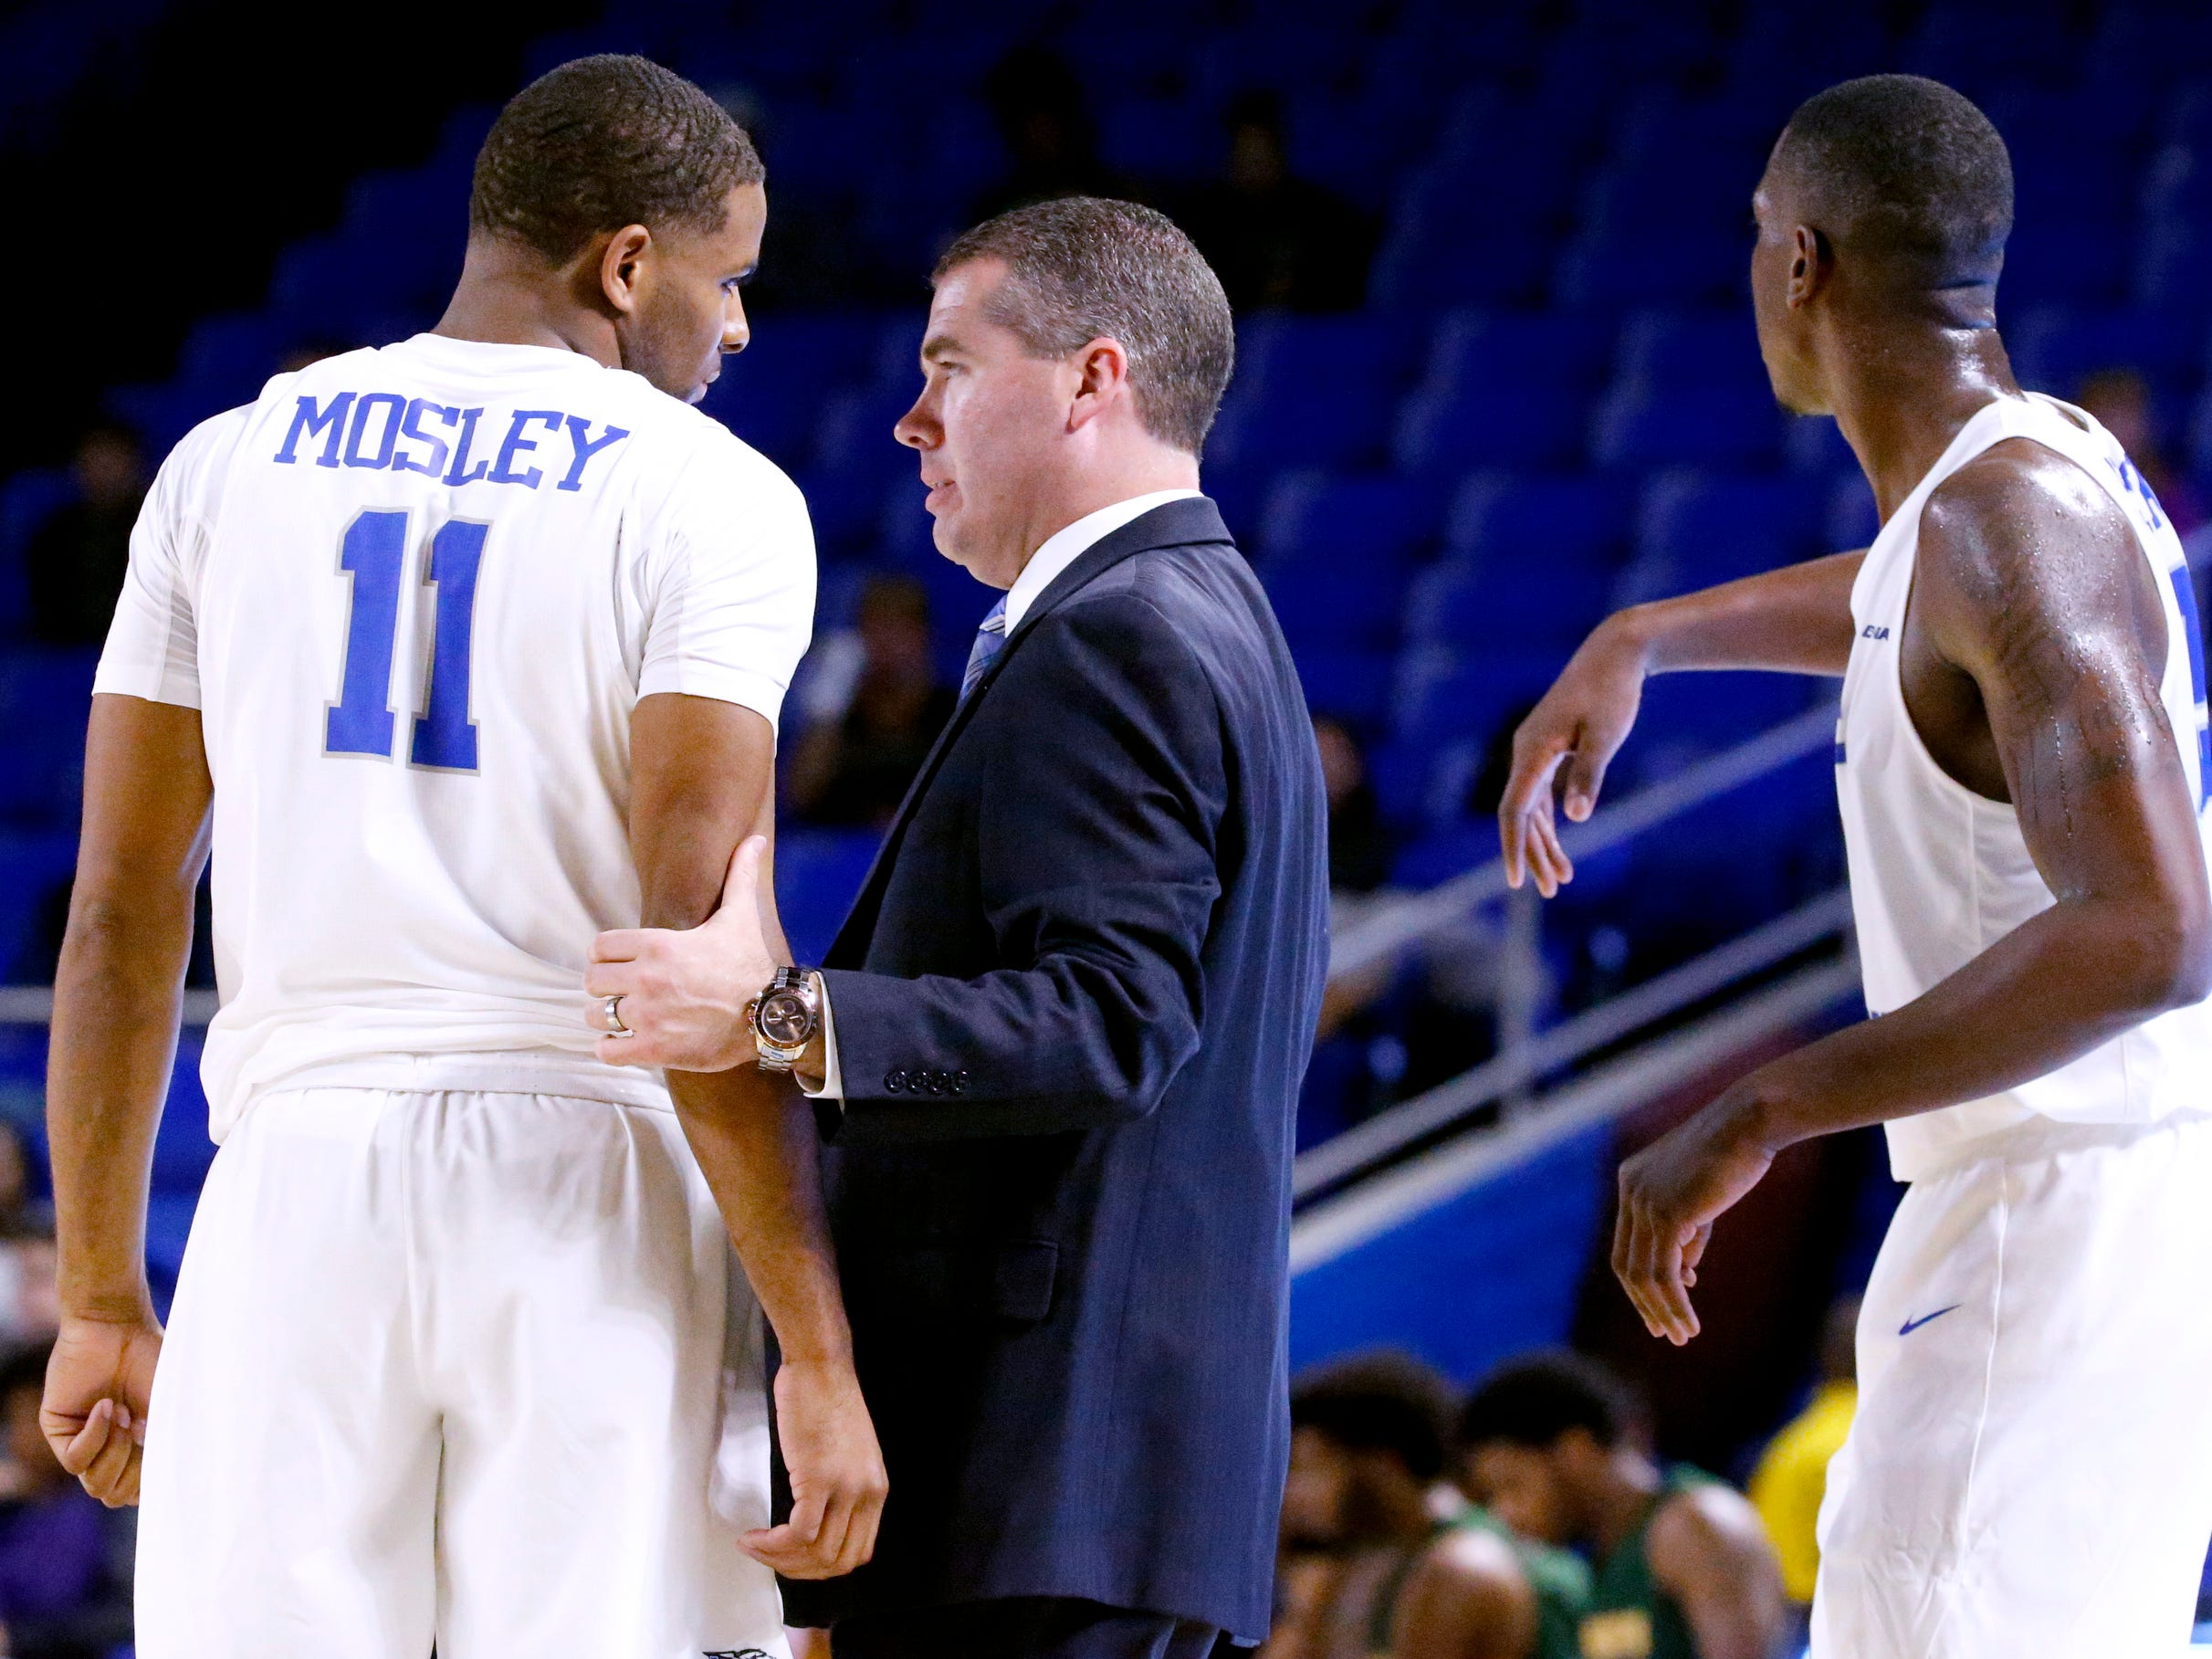 MTSU's head coach Nick McDevitt works with Lawrence Mosley (11) on sidelines during the game against Lees-McRae on Tuesday, Nov. 6, 2018.